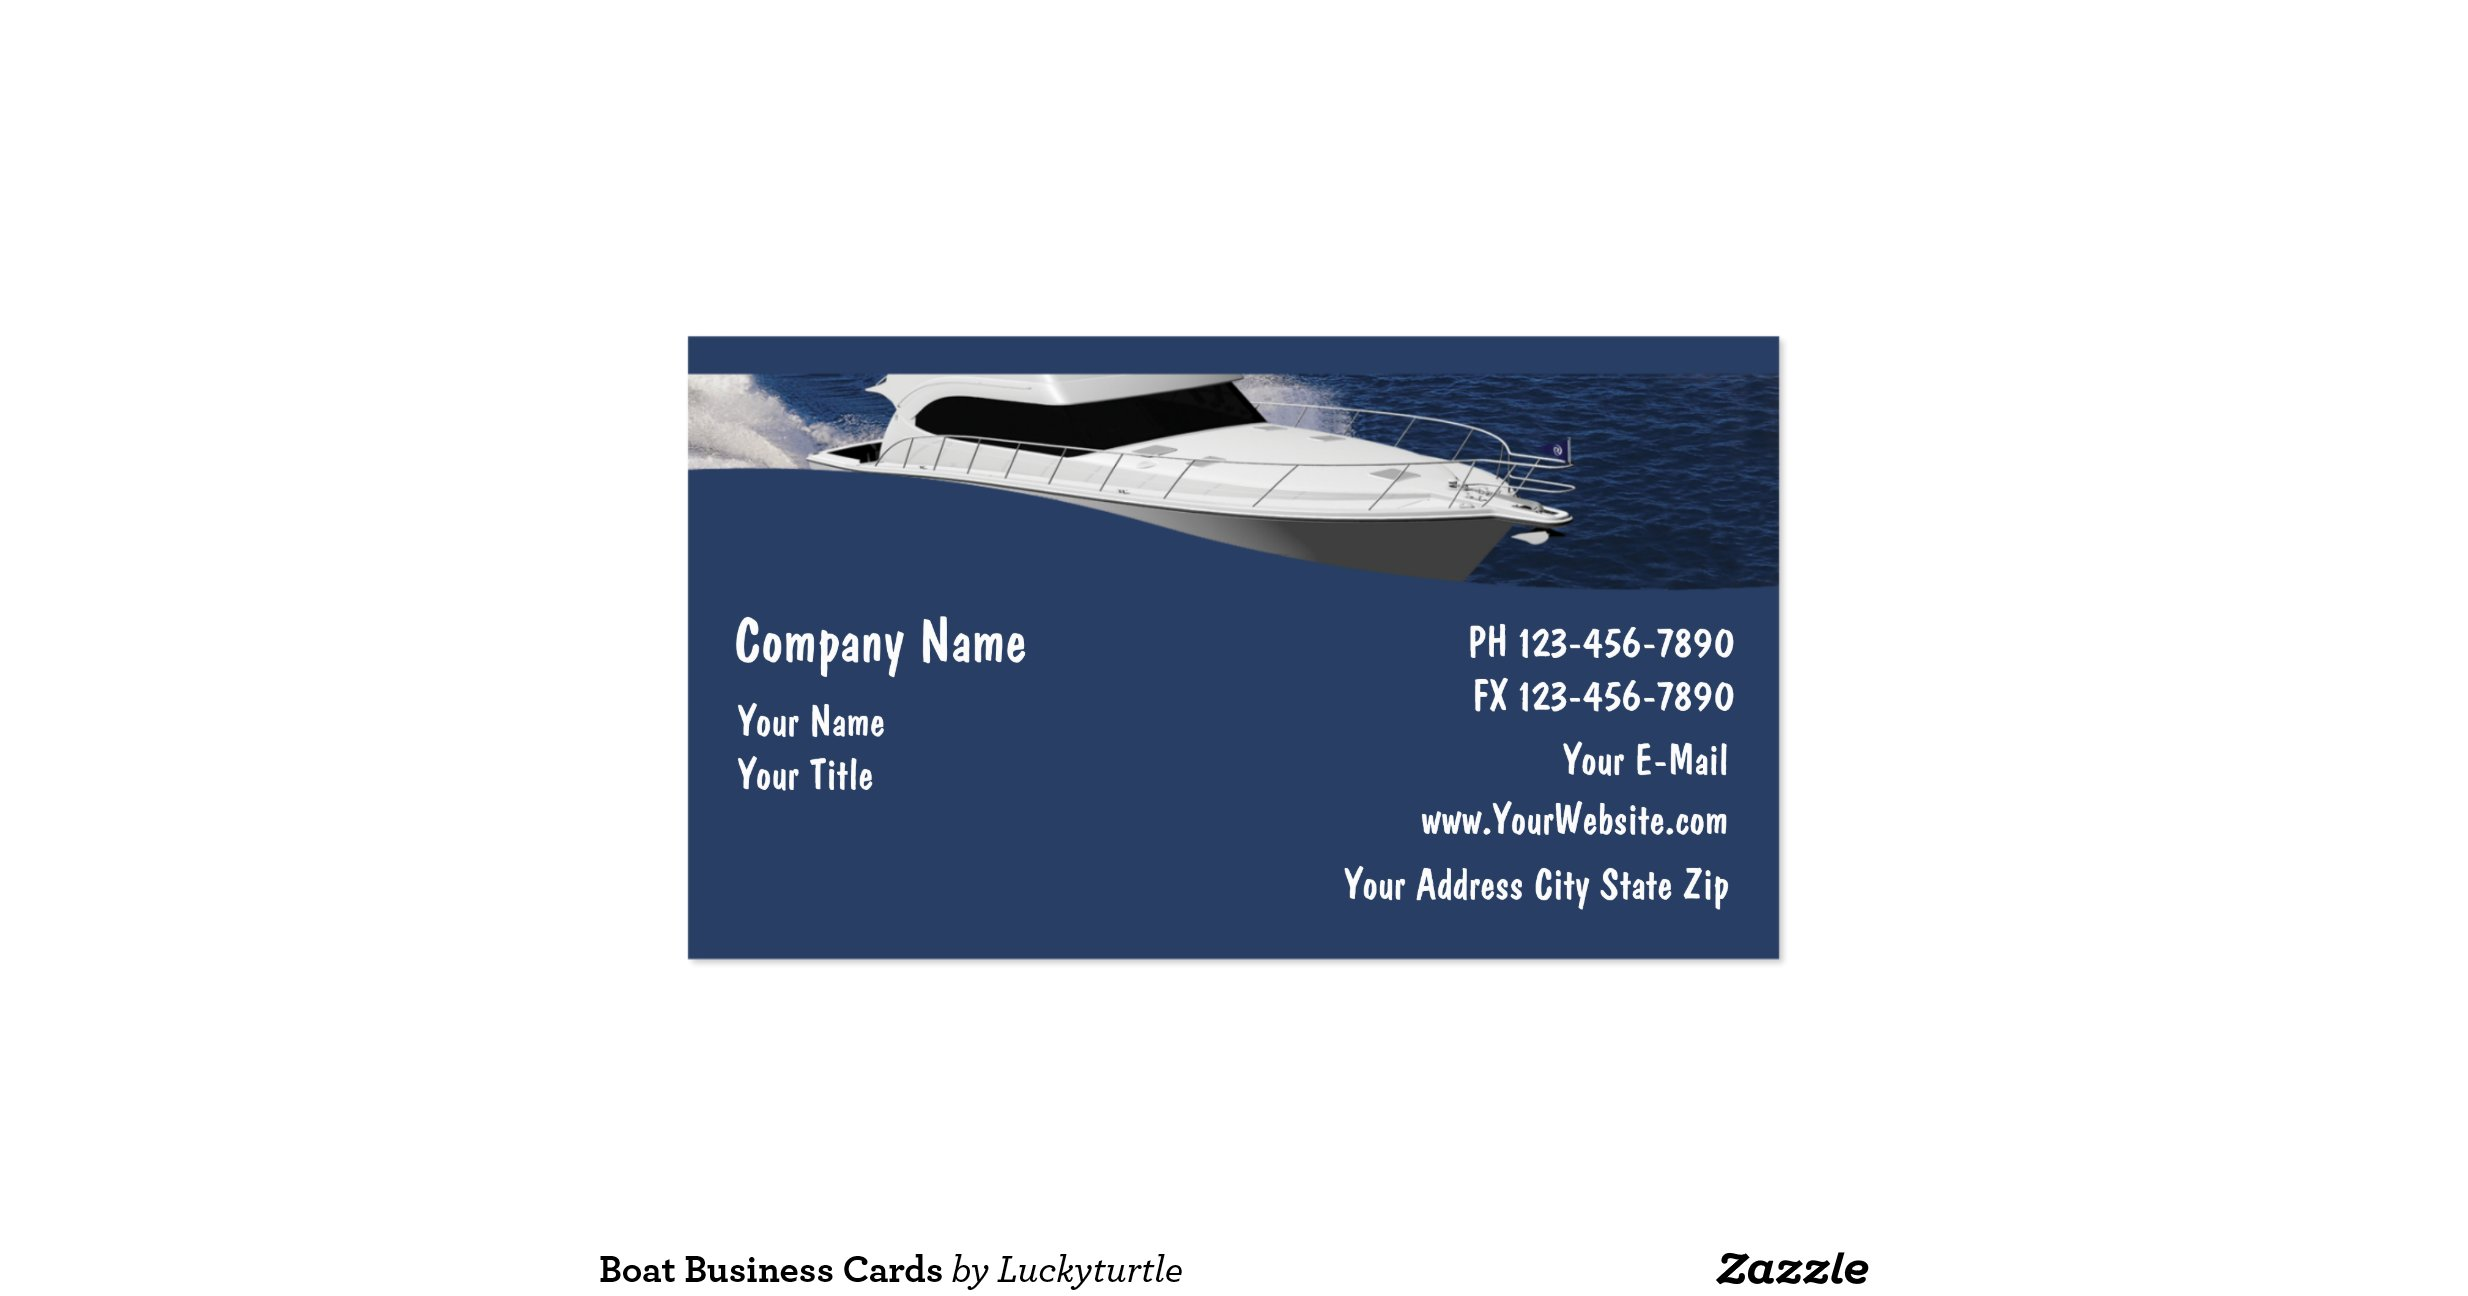 Boat business cards r0438c6b126064f548eedff22d5060597 for Boat business cards